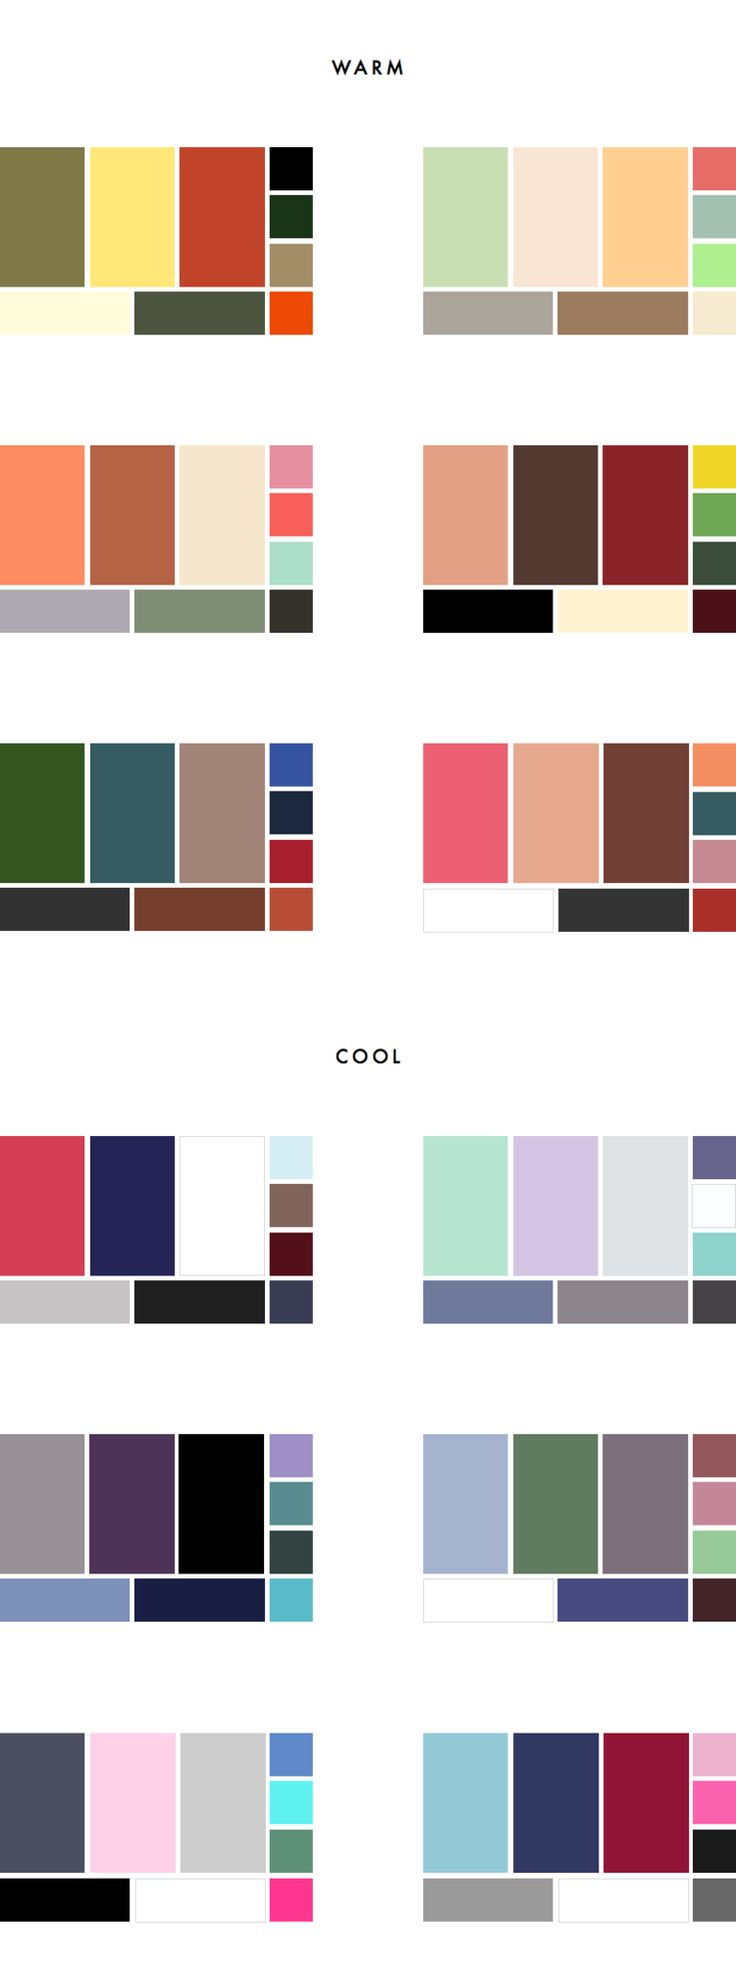 36 Colour Palettes for your Wardrobe Part I: Warm vs Cool - Capsule Wardrobe - Style Guide